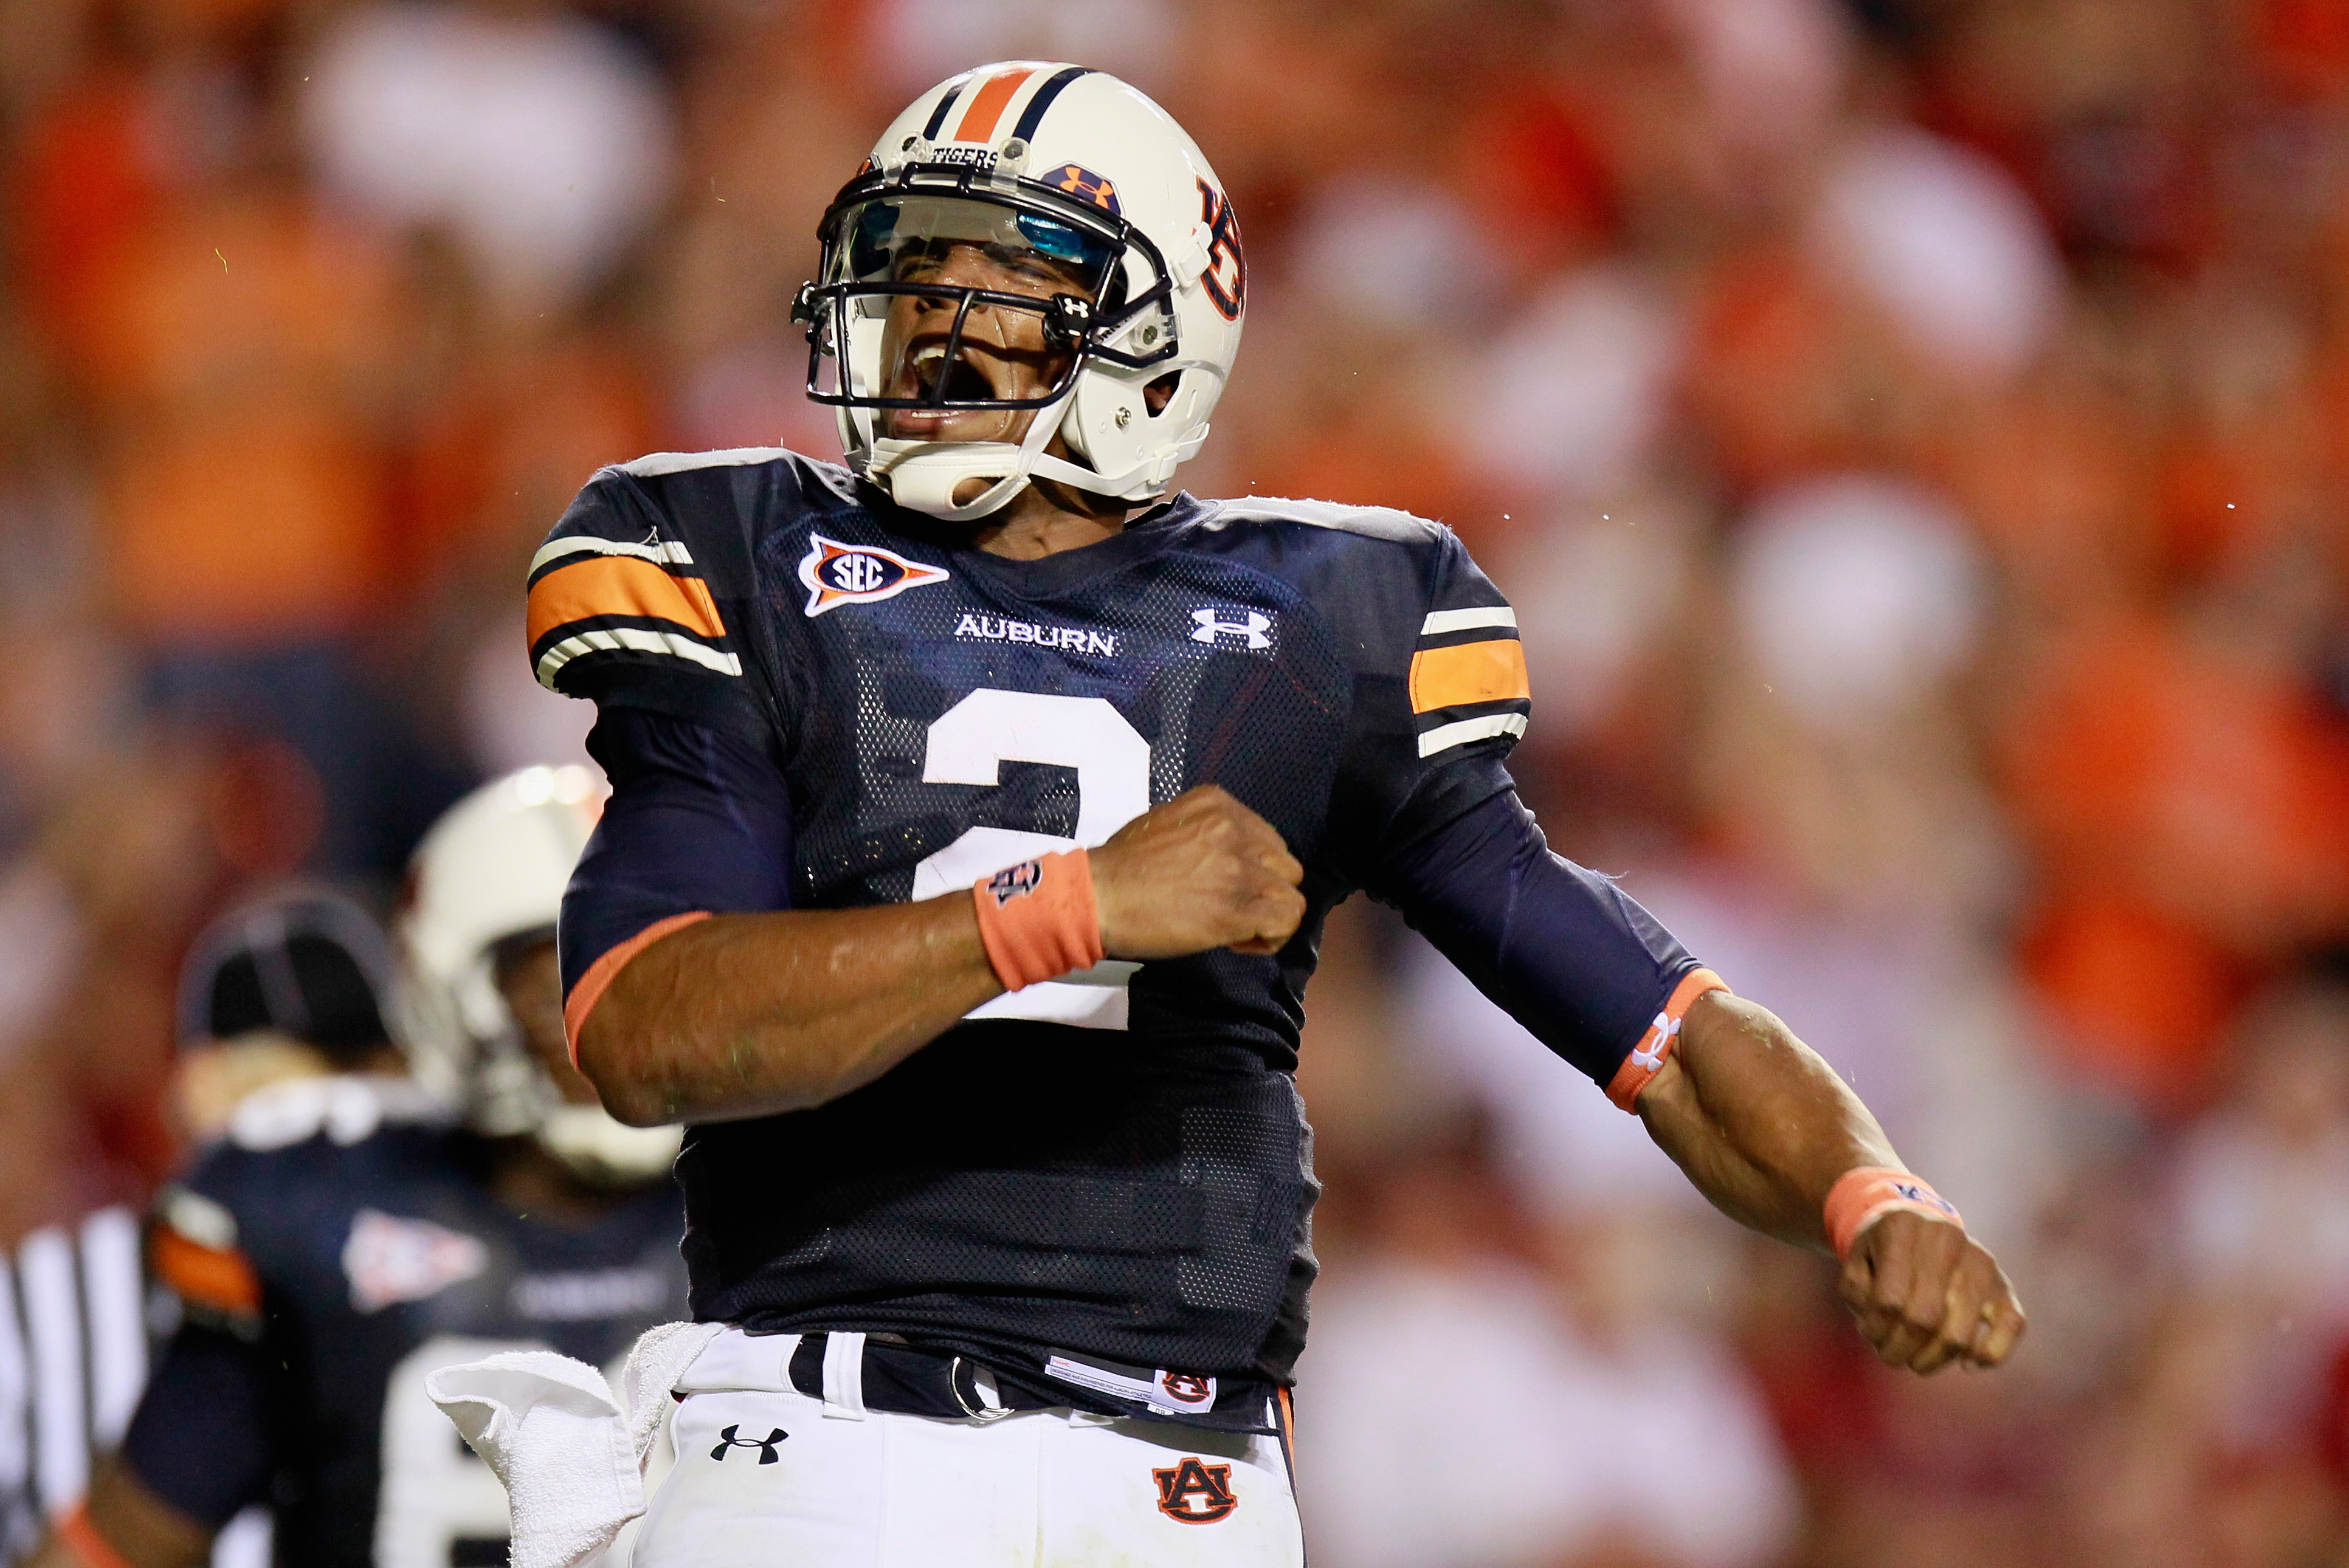 AUBURN, AL - SEPTEMBER 25:  Quarterback Cameron Newton #2 of the Auburn Tigers reacts after rushing in a touchdown against the South Carolina Gamecocks at Jordan-Hare Stadium on September 25, 2010 in Auburn, Alabama.  (Photo by Kevin C. Cox/Getty Images)